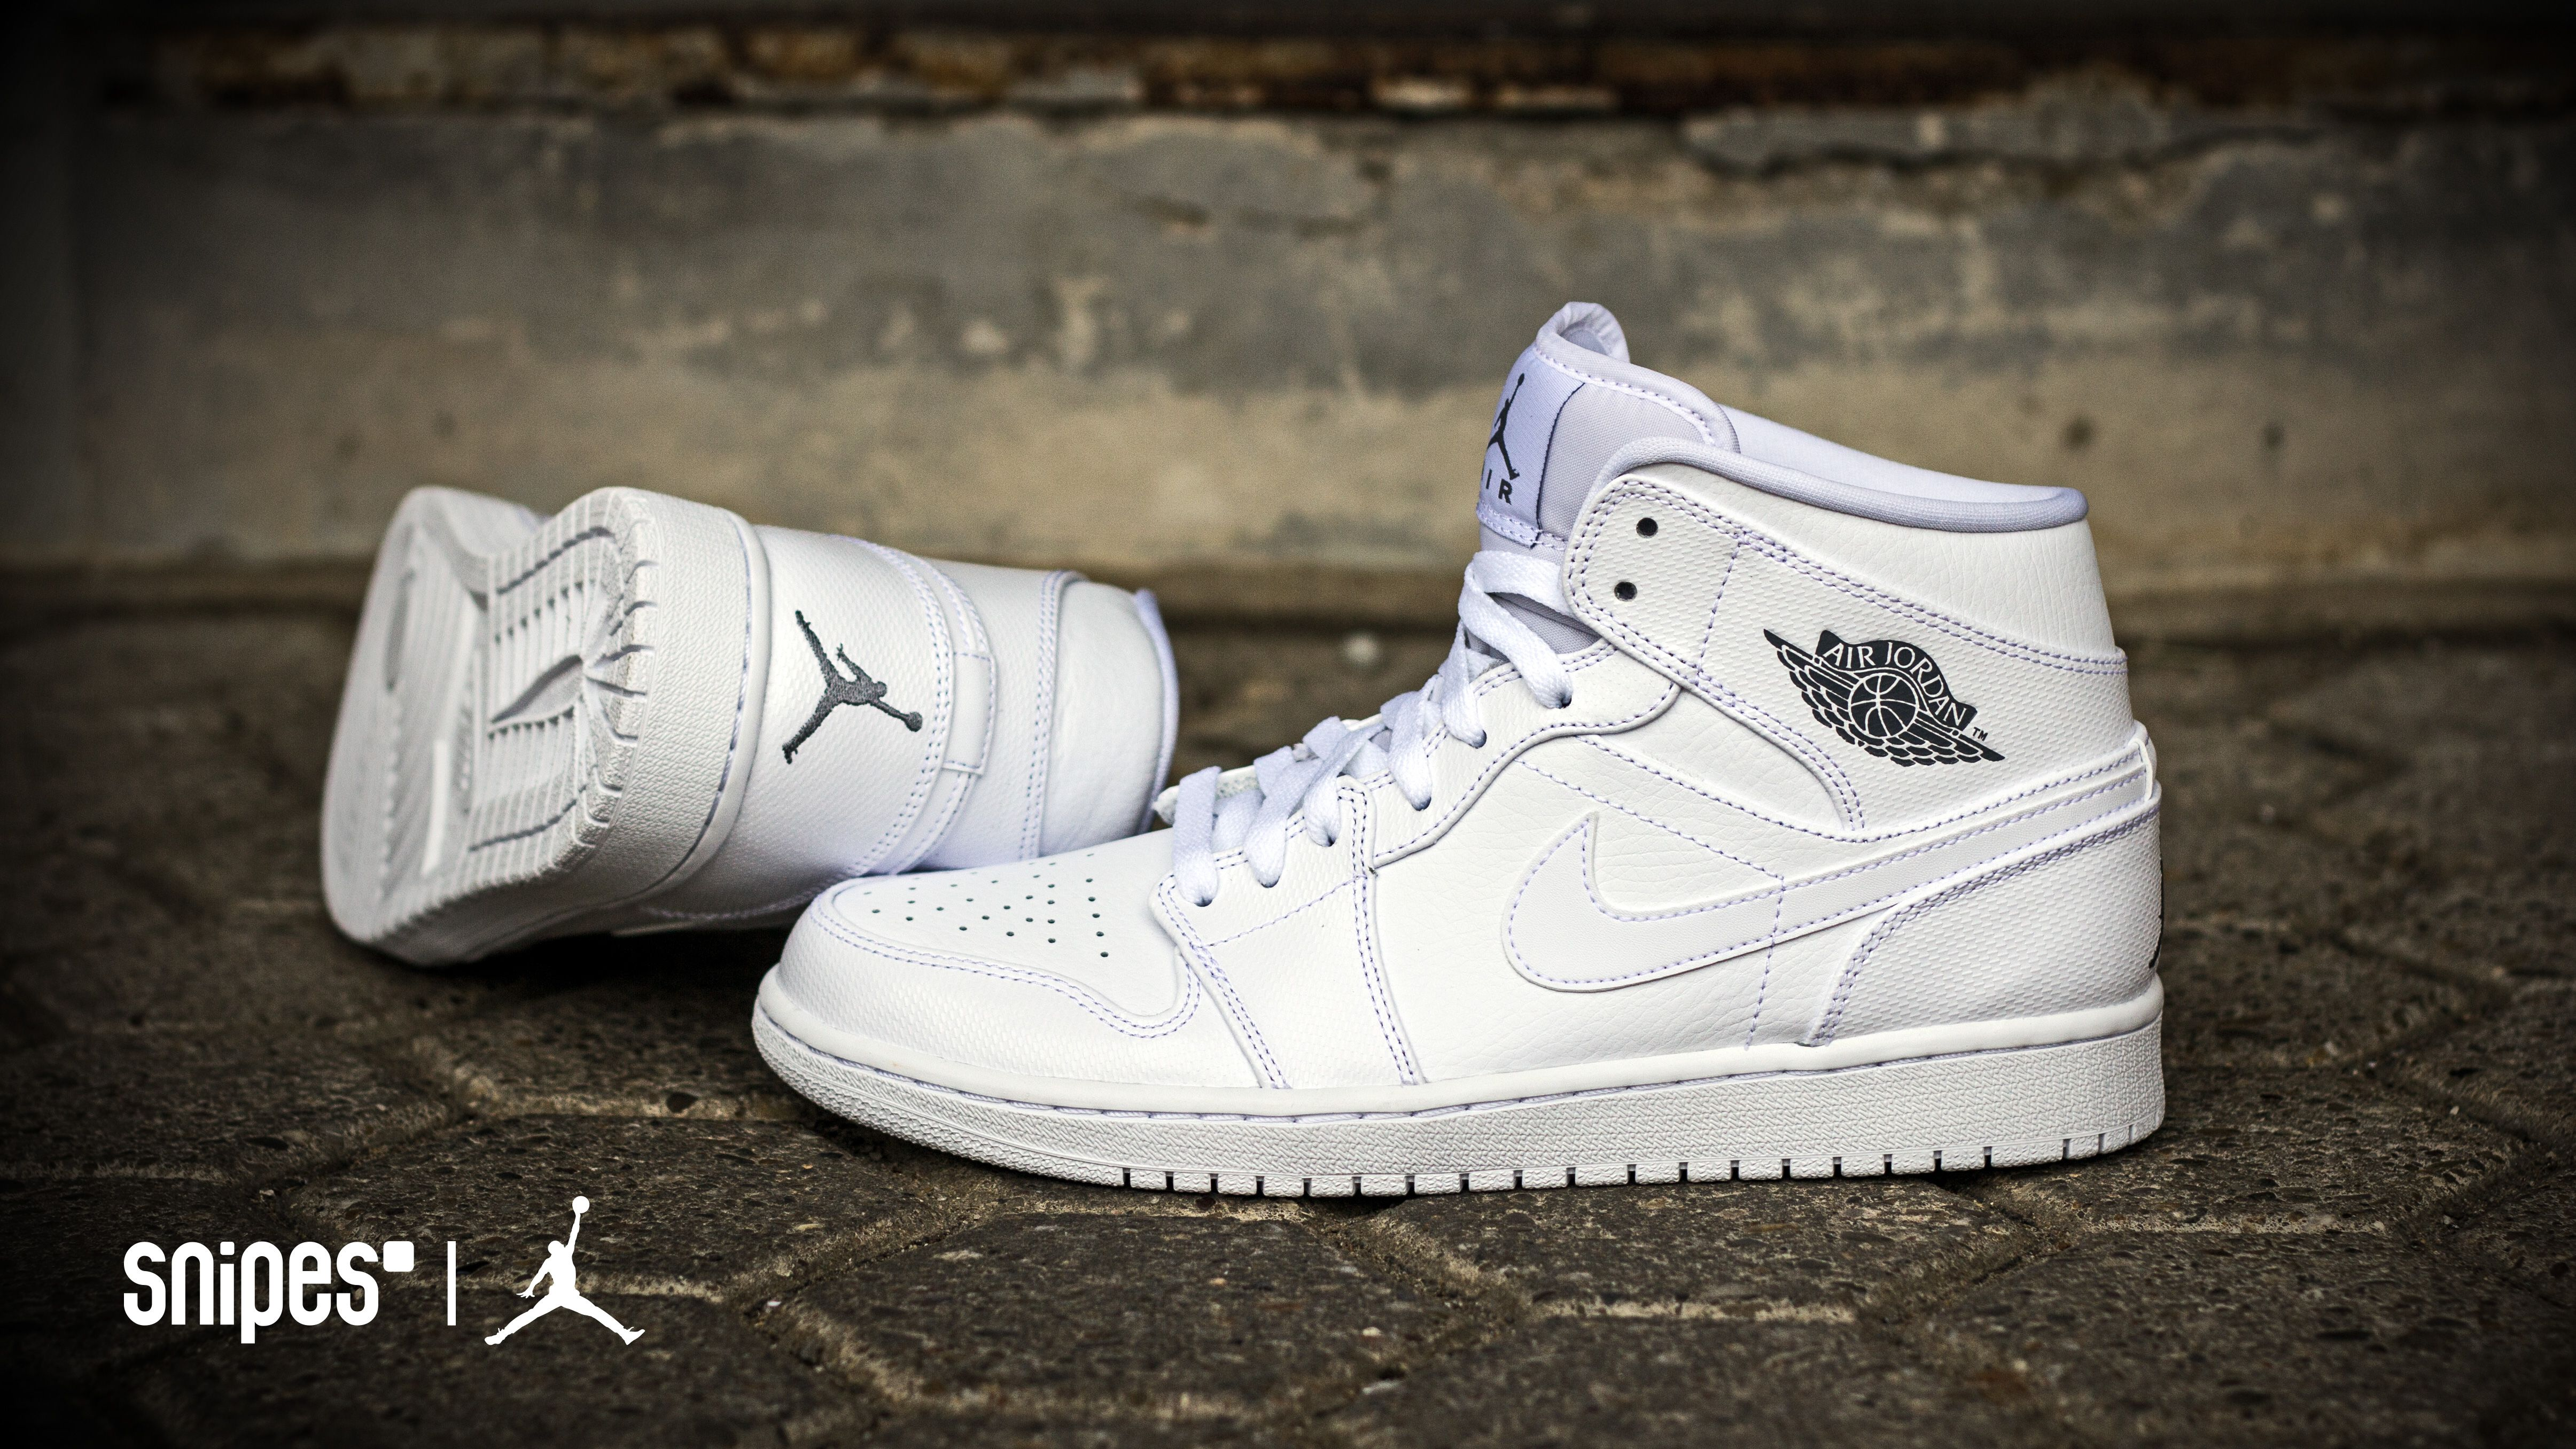 official photos 679a7 f3e47 Basketballschuh Air Jordan 1 Mid white white Artikelnummer  1012243 unter  www.snipes.com jordan